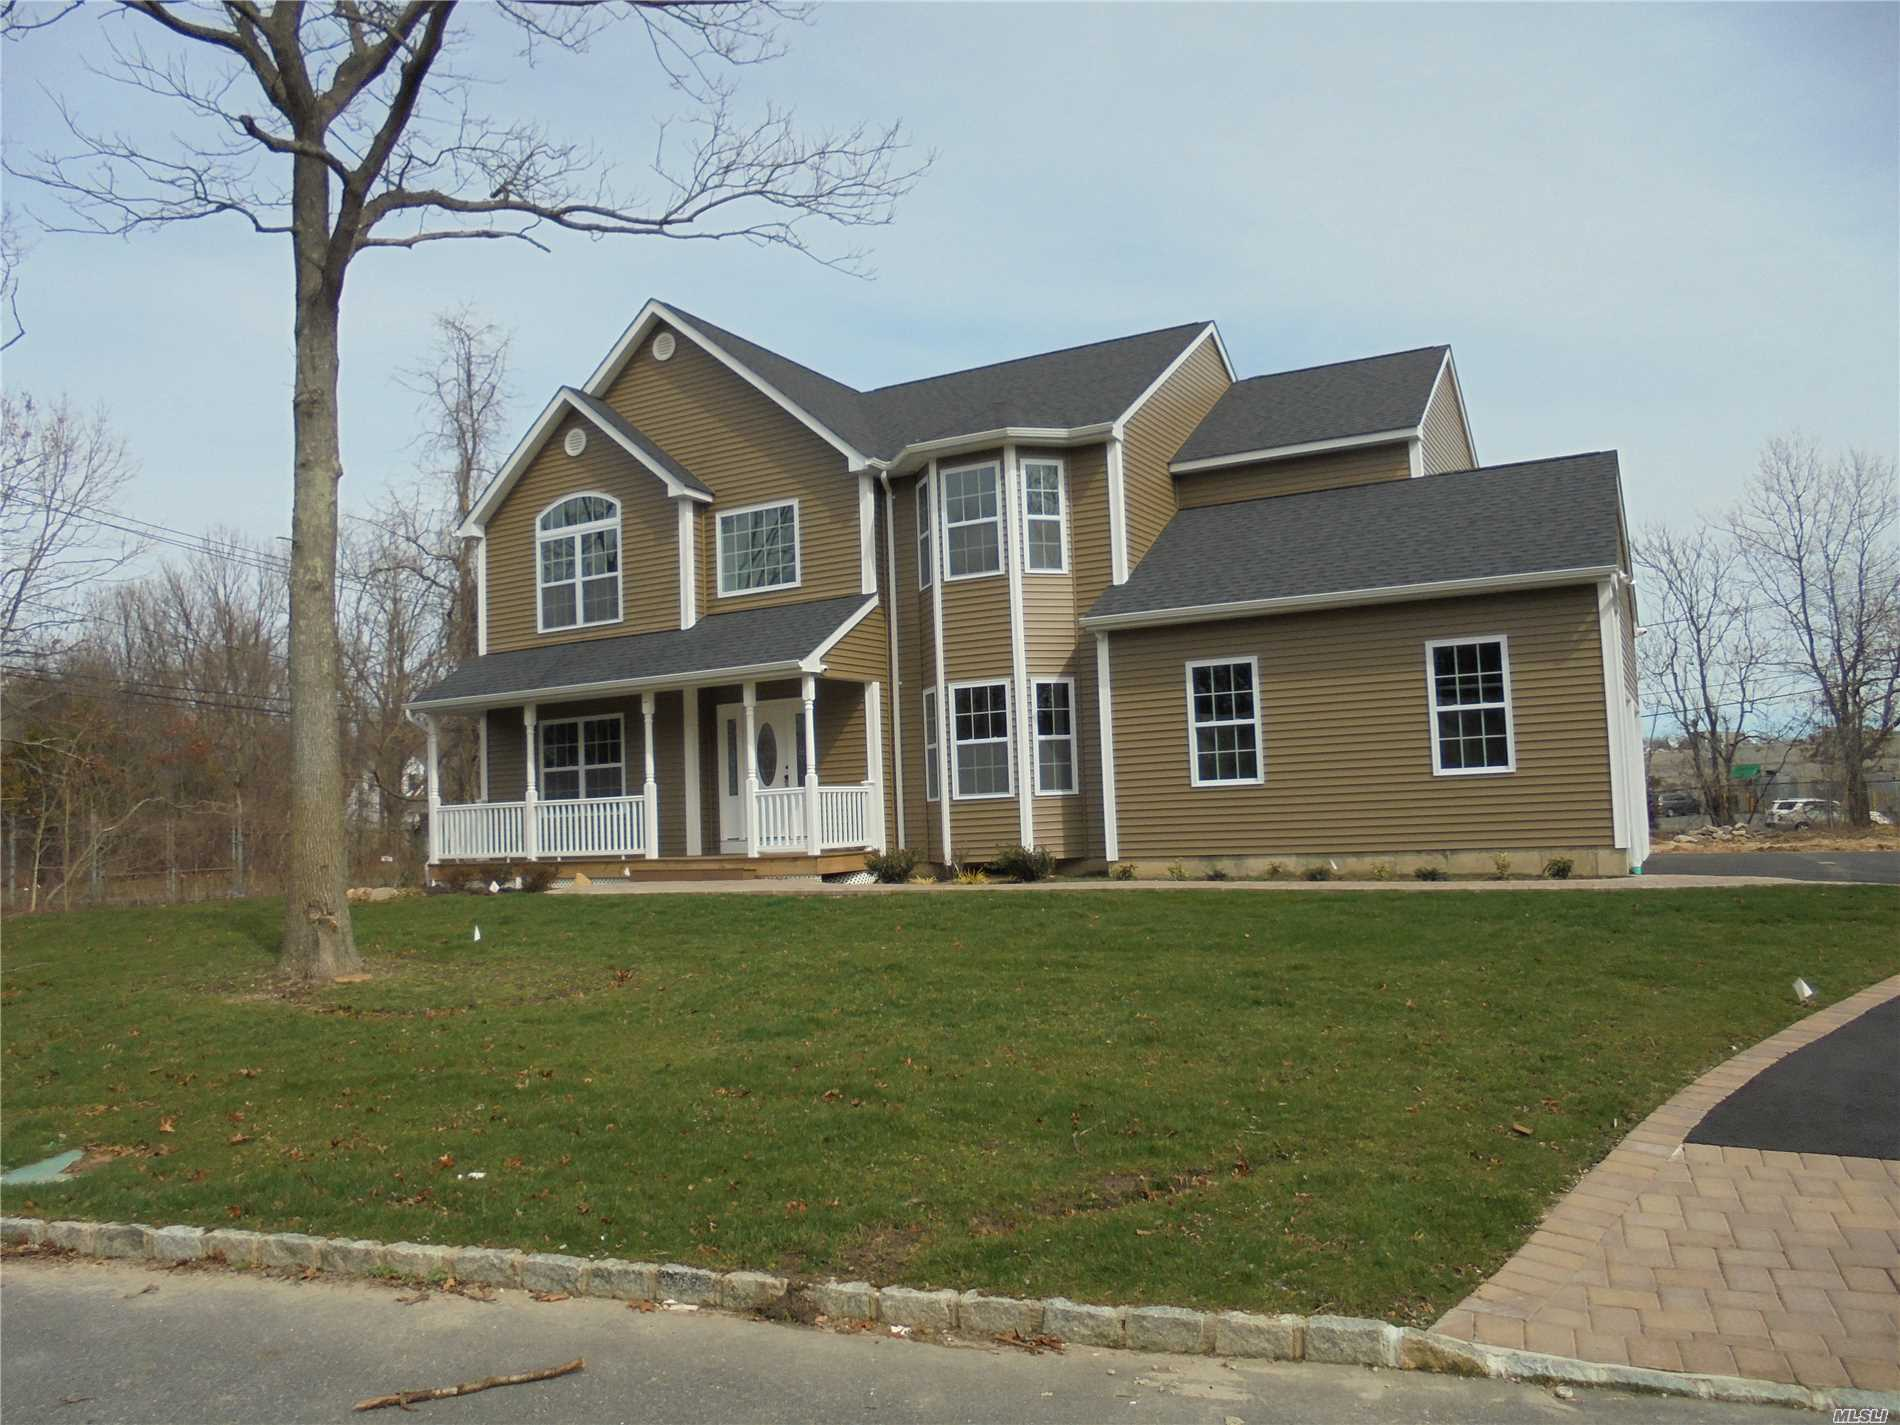 lot 25 Foxrun Ct - Pt.Jefferson Sta, New York